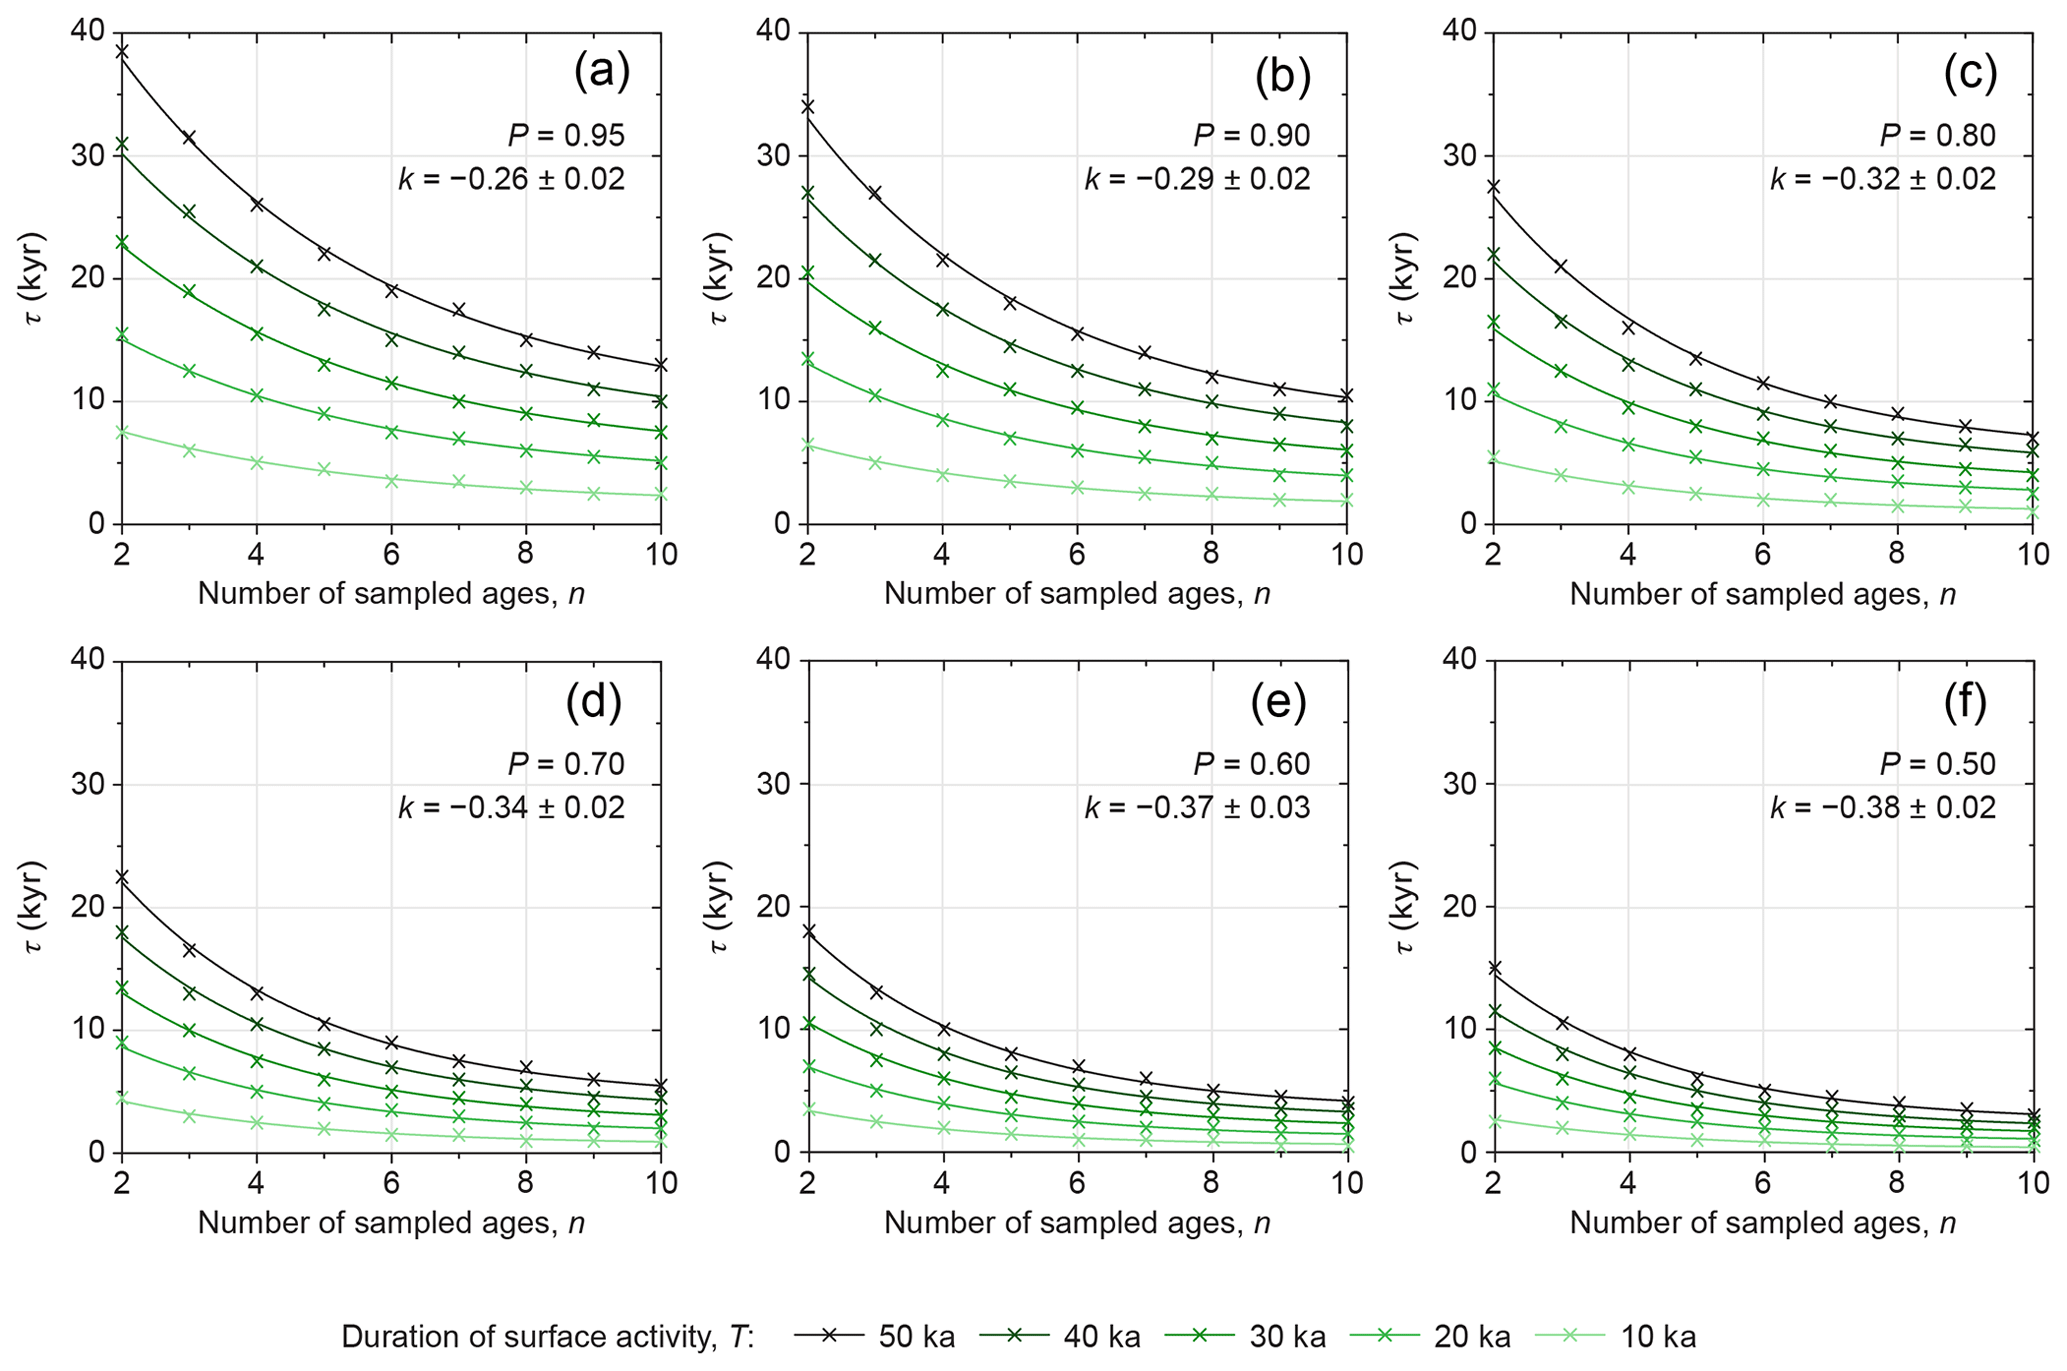 ESurf - Inferring the timing of abandonment of aggraded